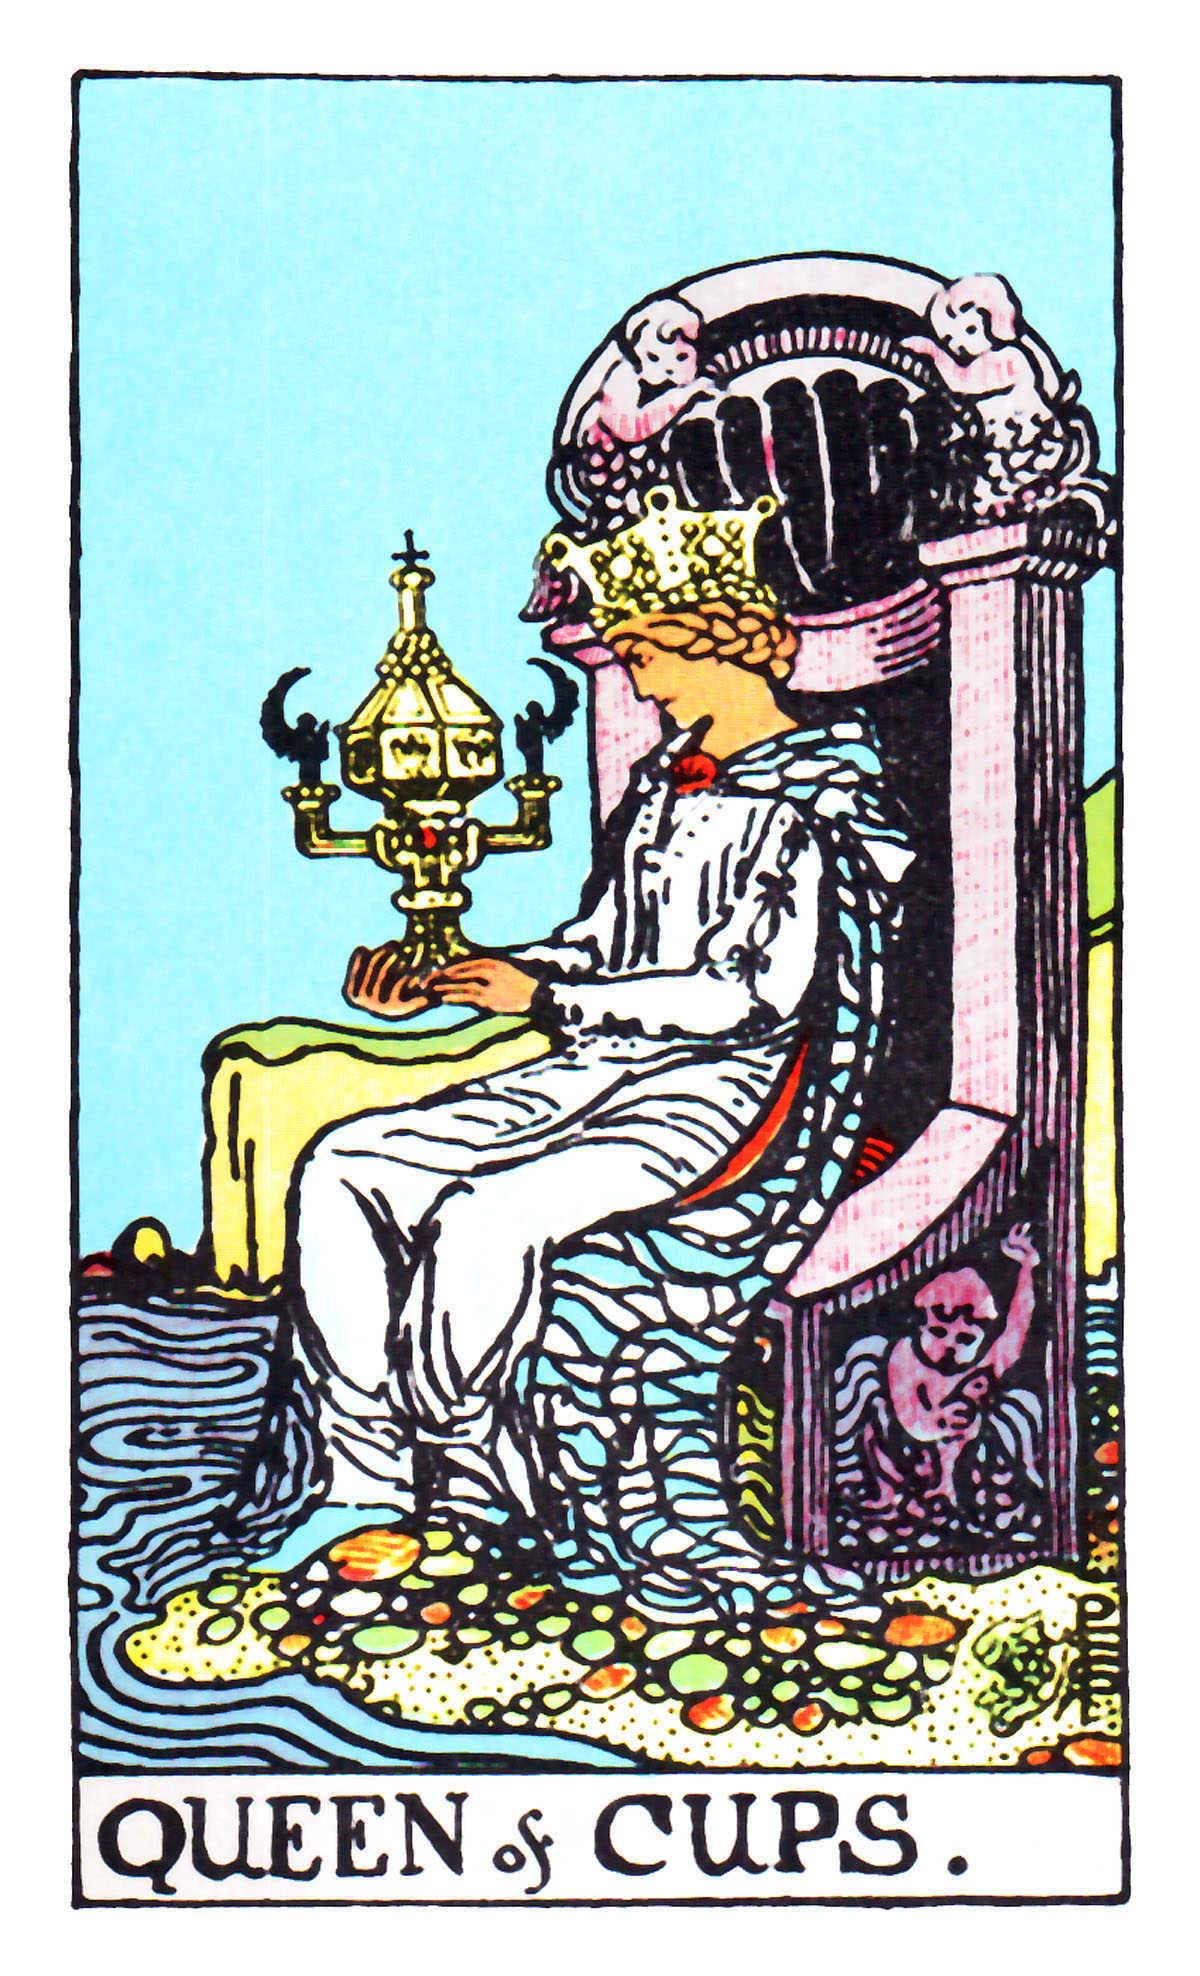 knight of cups meaning